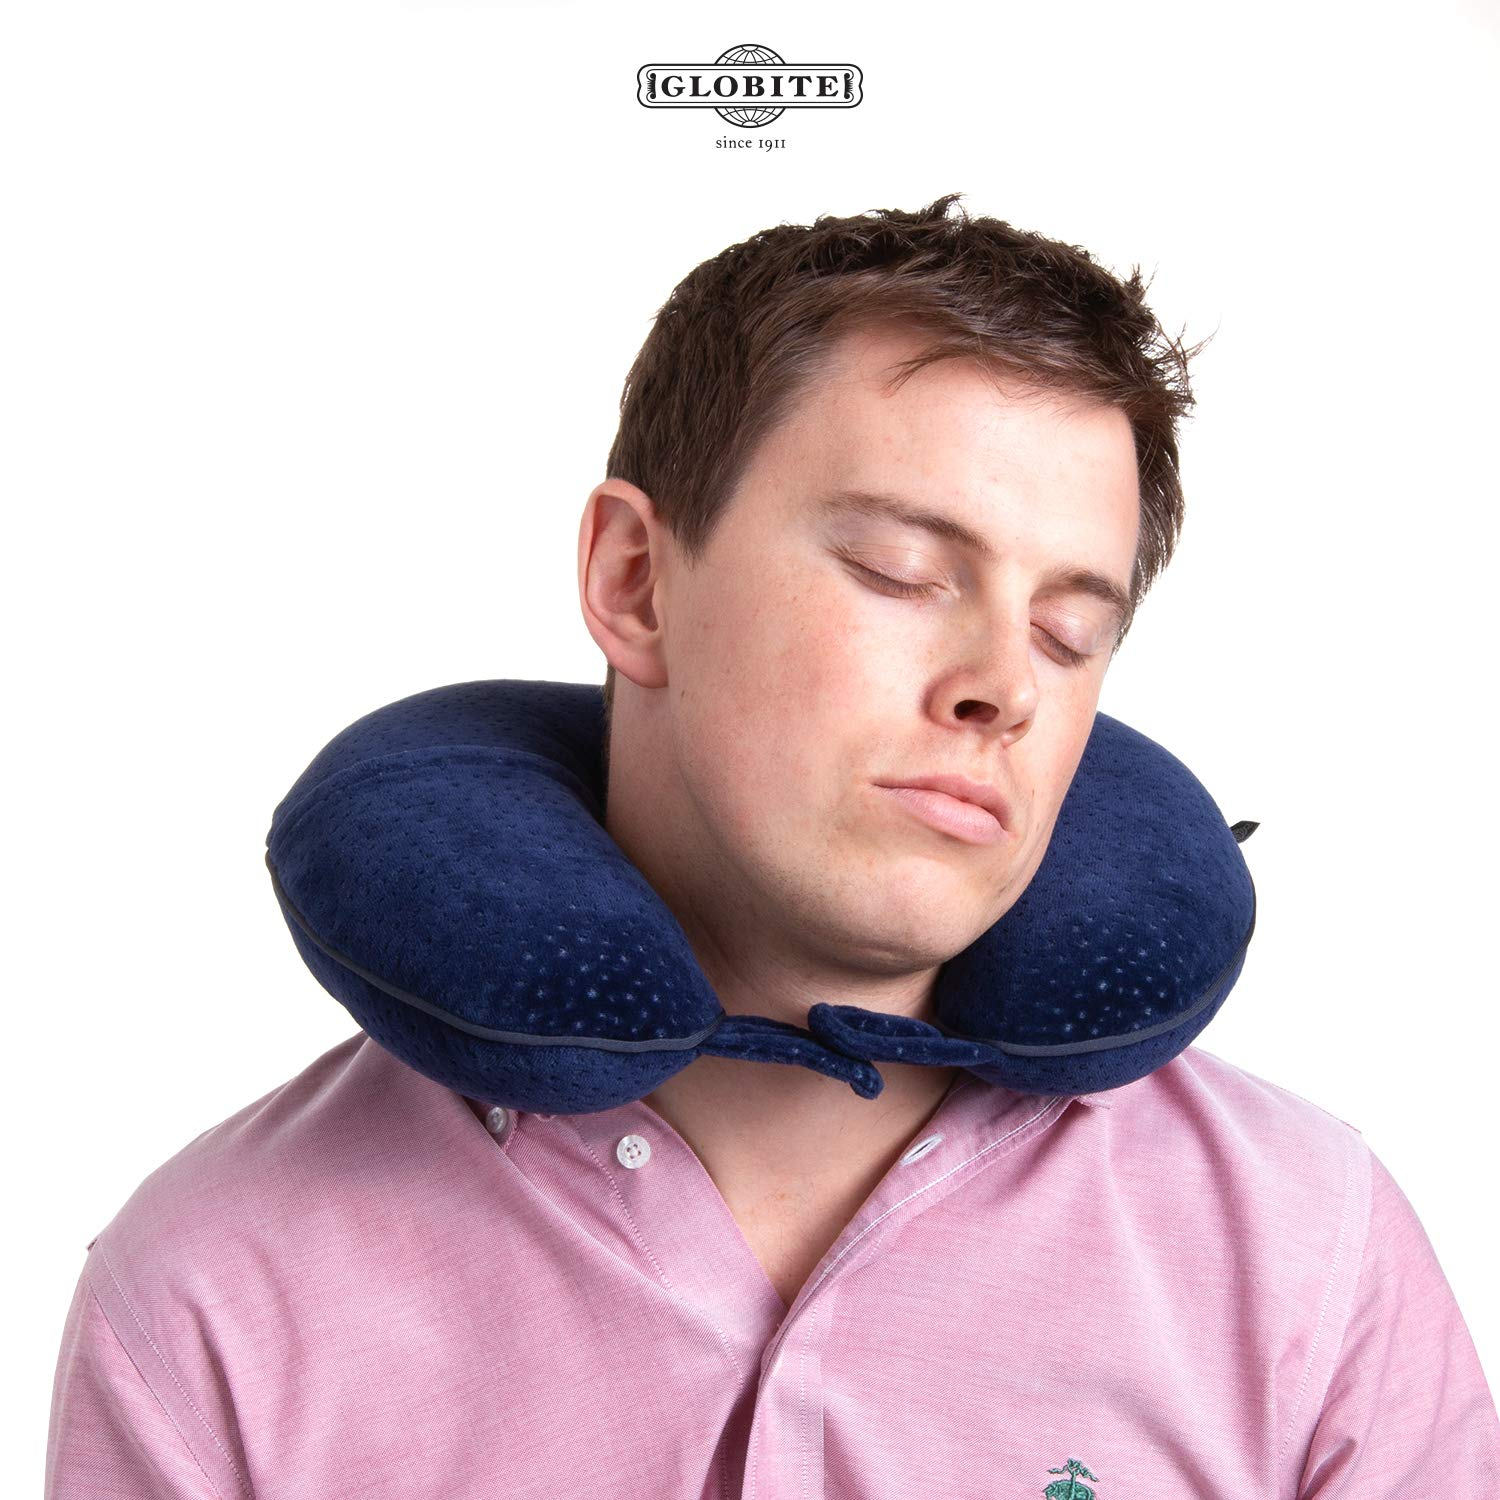 Globite Memory Foam Neck Pillow | Navy | Pillow for Travel | Pillow for Sleeping and Neck Support Globite Travel Goods